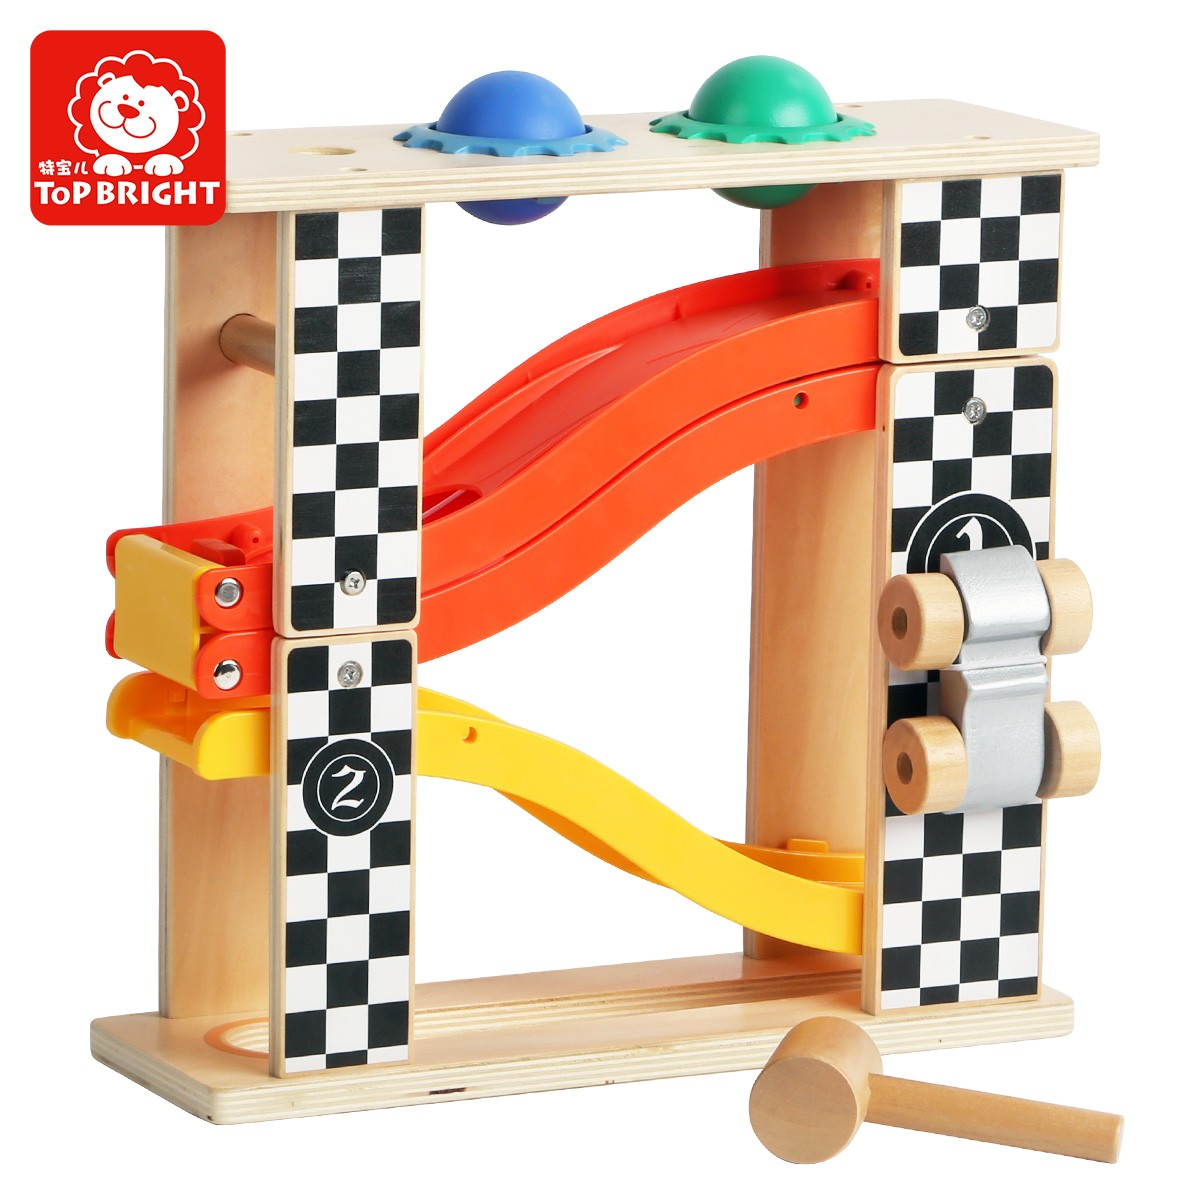 Topbright Pound and Roll Tower wooden toys for 1 2 year old boy gift with hammer and 2 balls